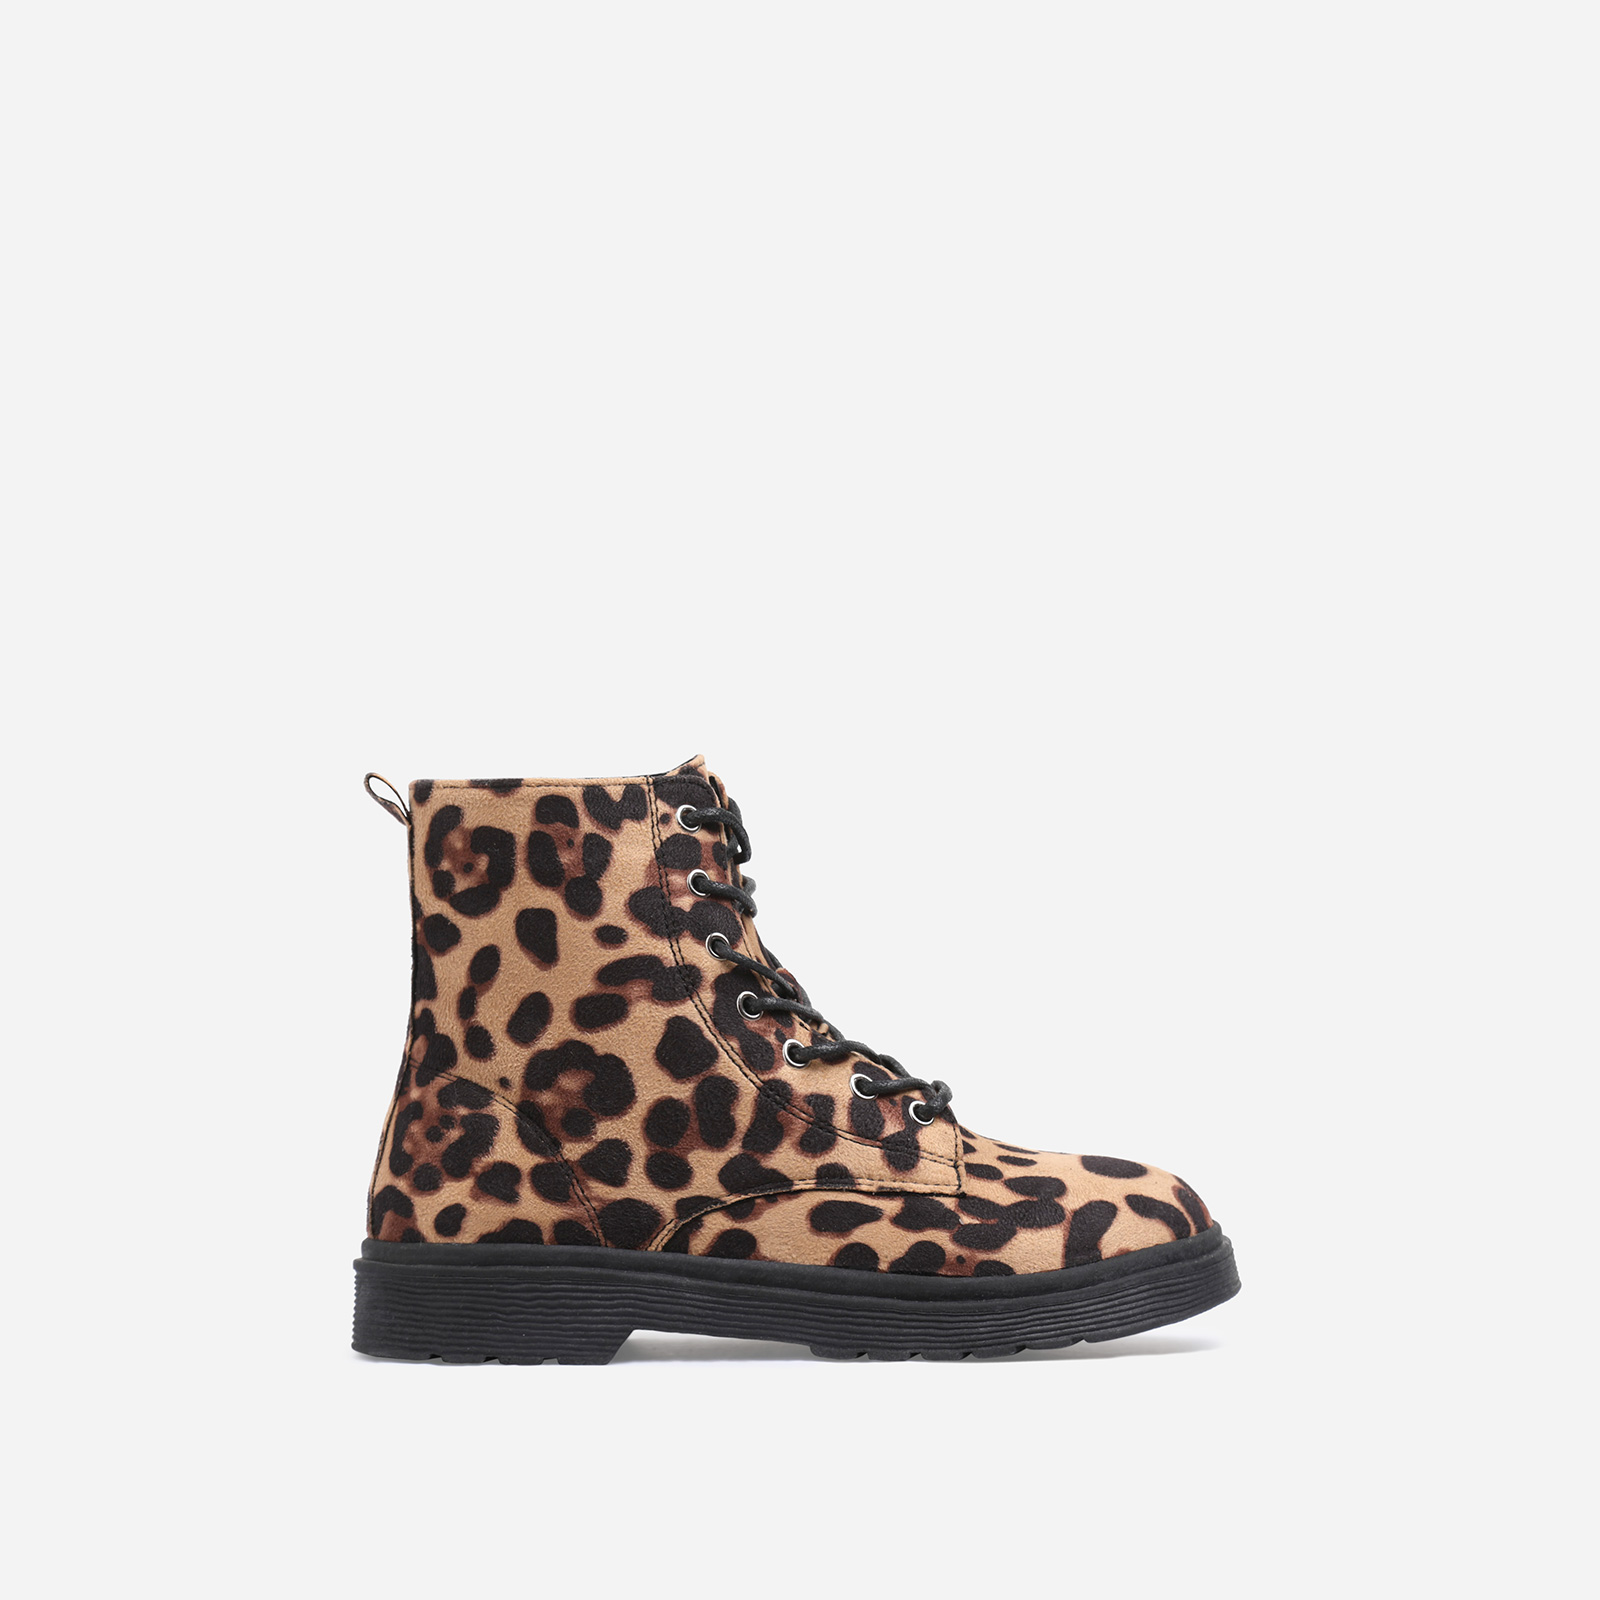 Poppin Girl's Lace Up Ankle Biker Boot In Tan Leopard Print Faux Suede